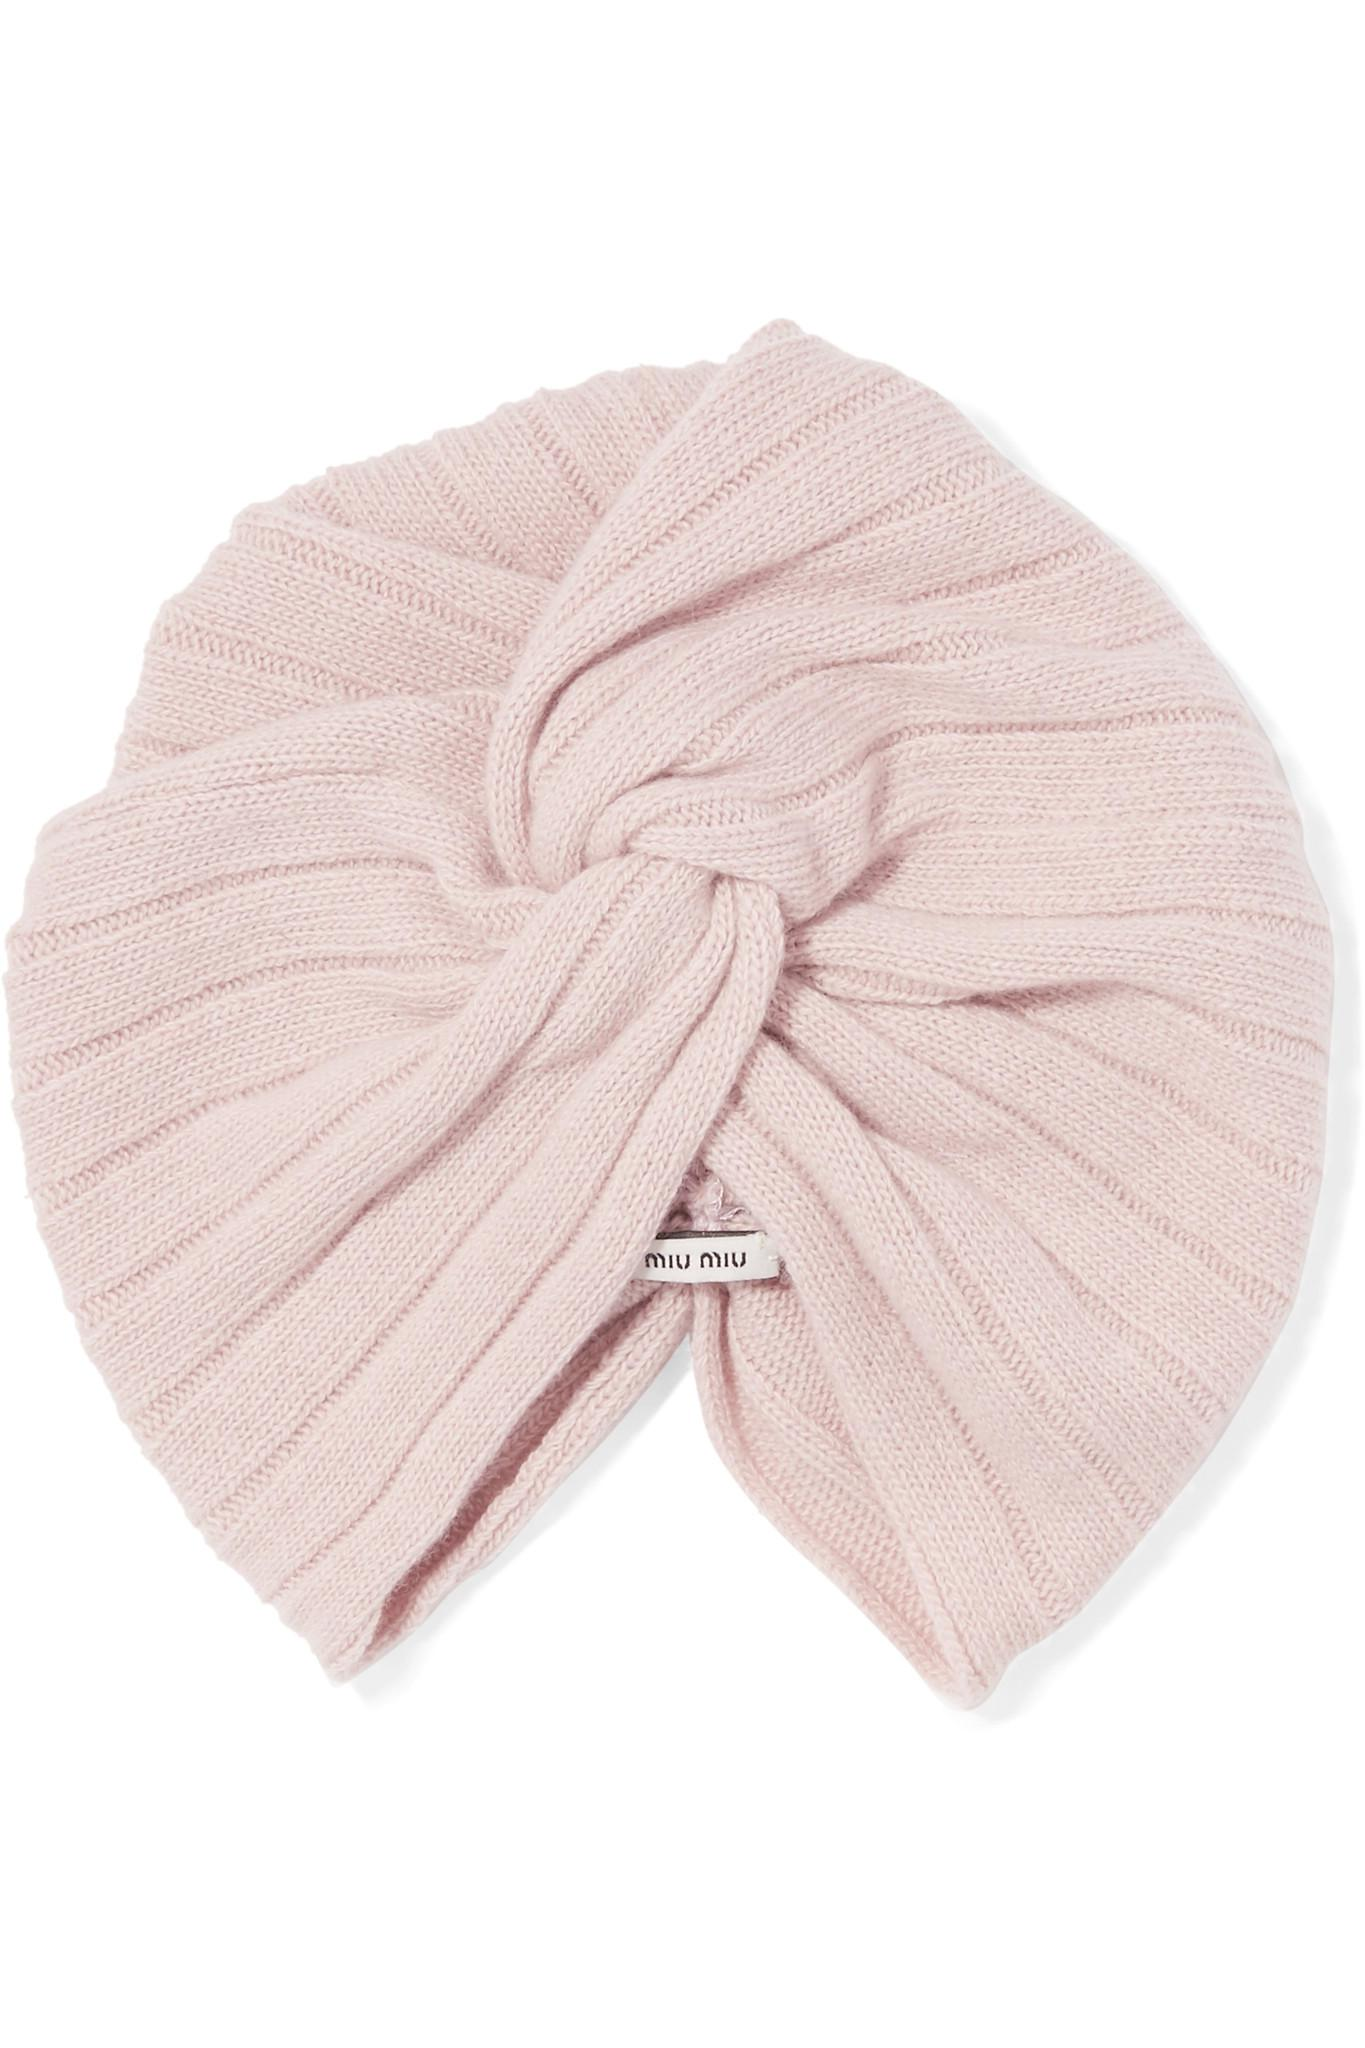 d360ebbff1f Lyst - Miu Miu Knotted Wool And Cashmere-blend Turban in Pink